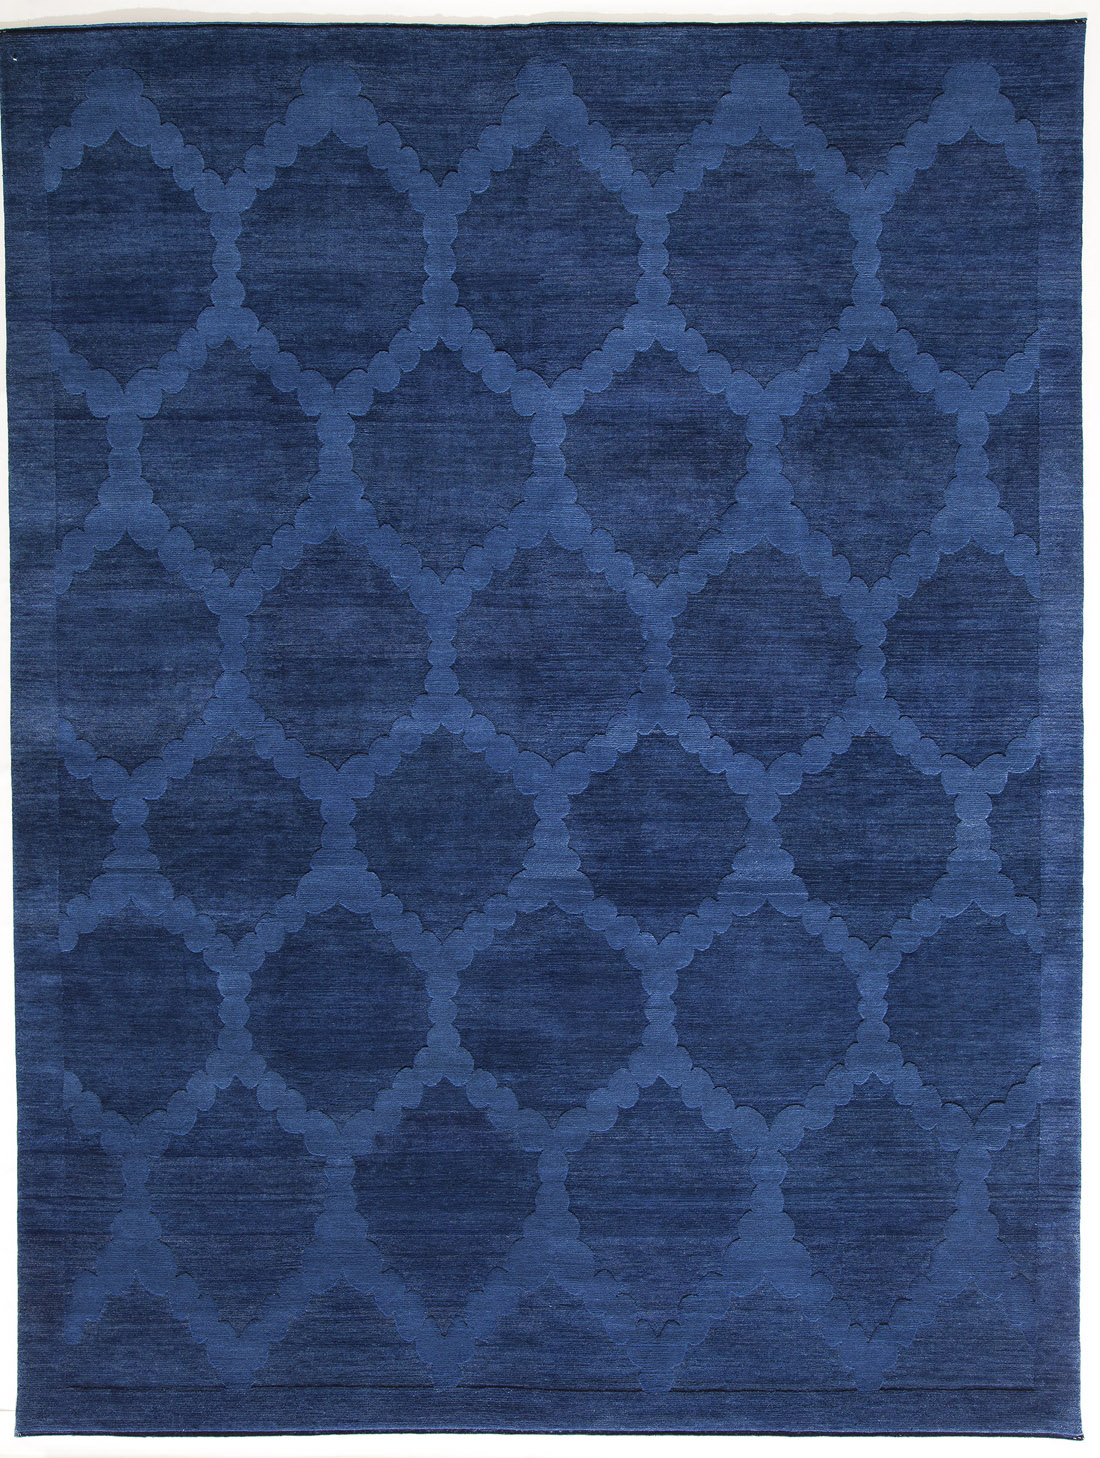 'Ying' shown in colour 'Indigo' by Kooches | Image courtesy of Kooches